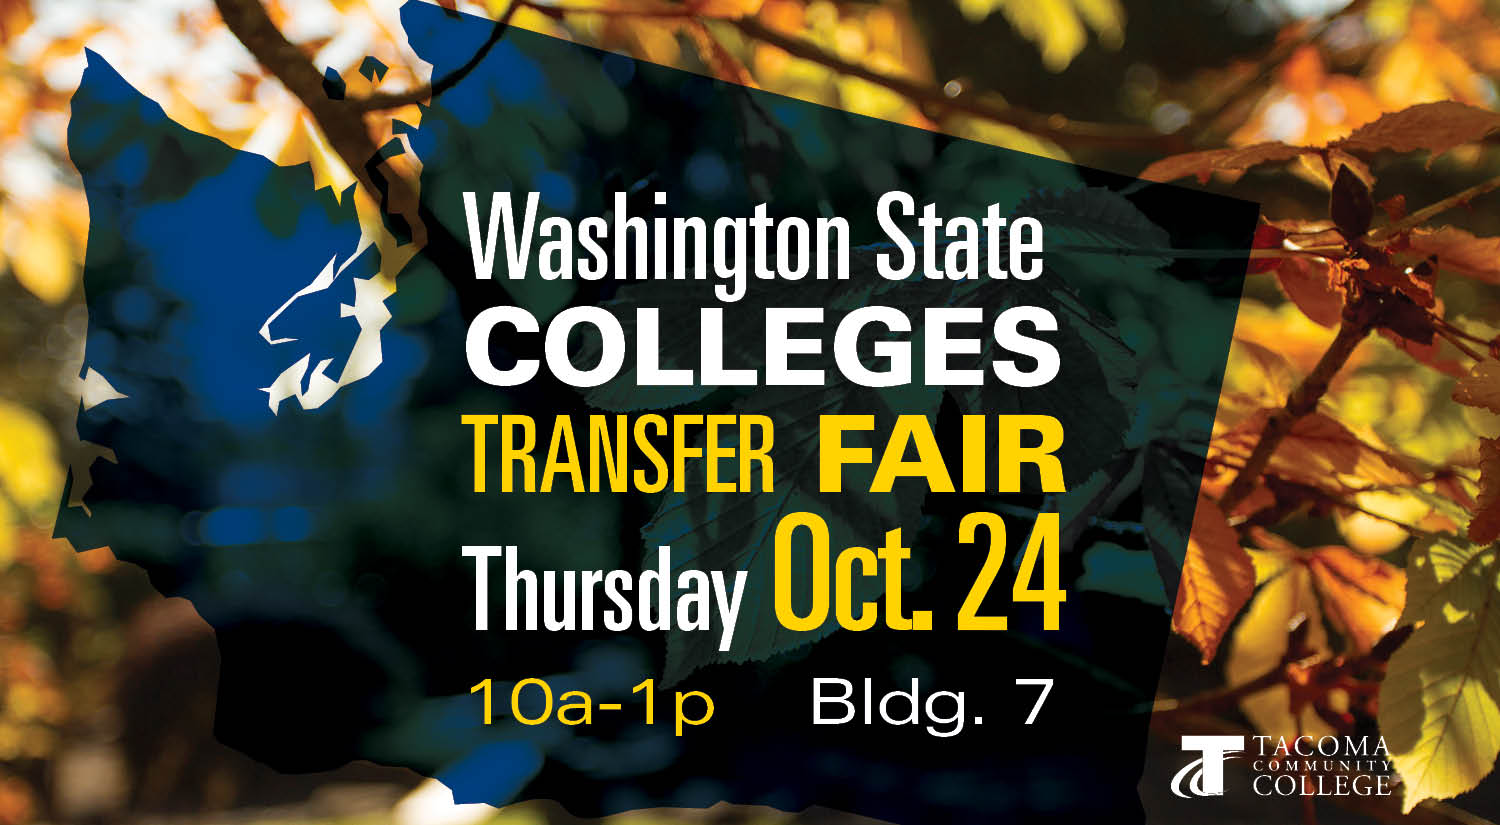 out of state college transfer fair Monday Oct. 21 9-1 Bldg. 7